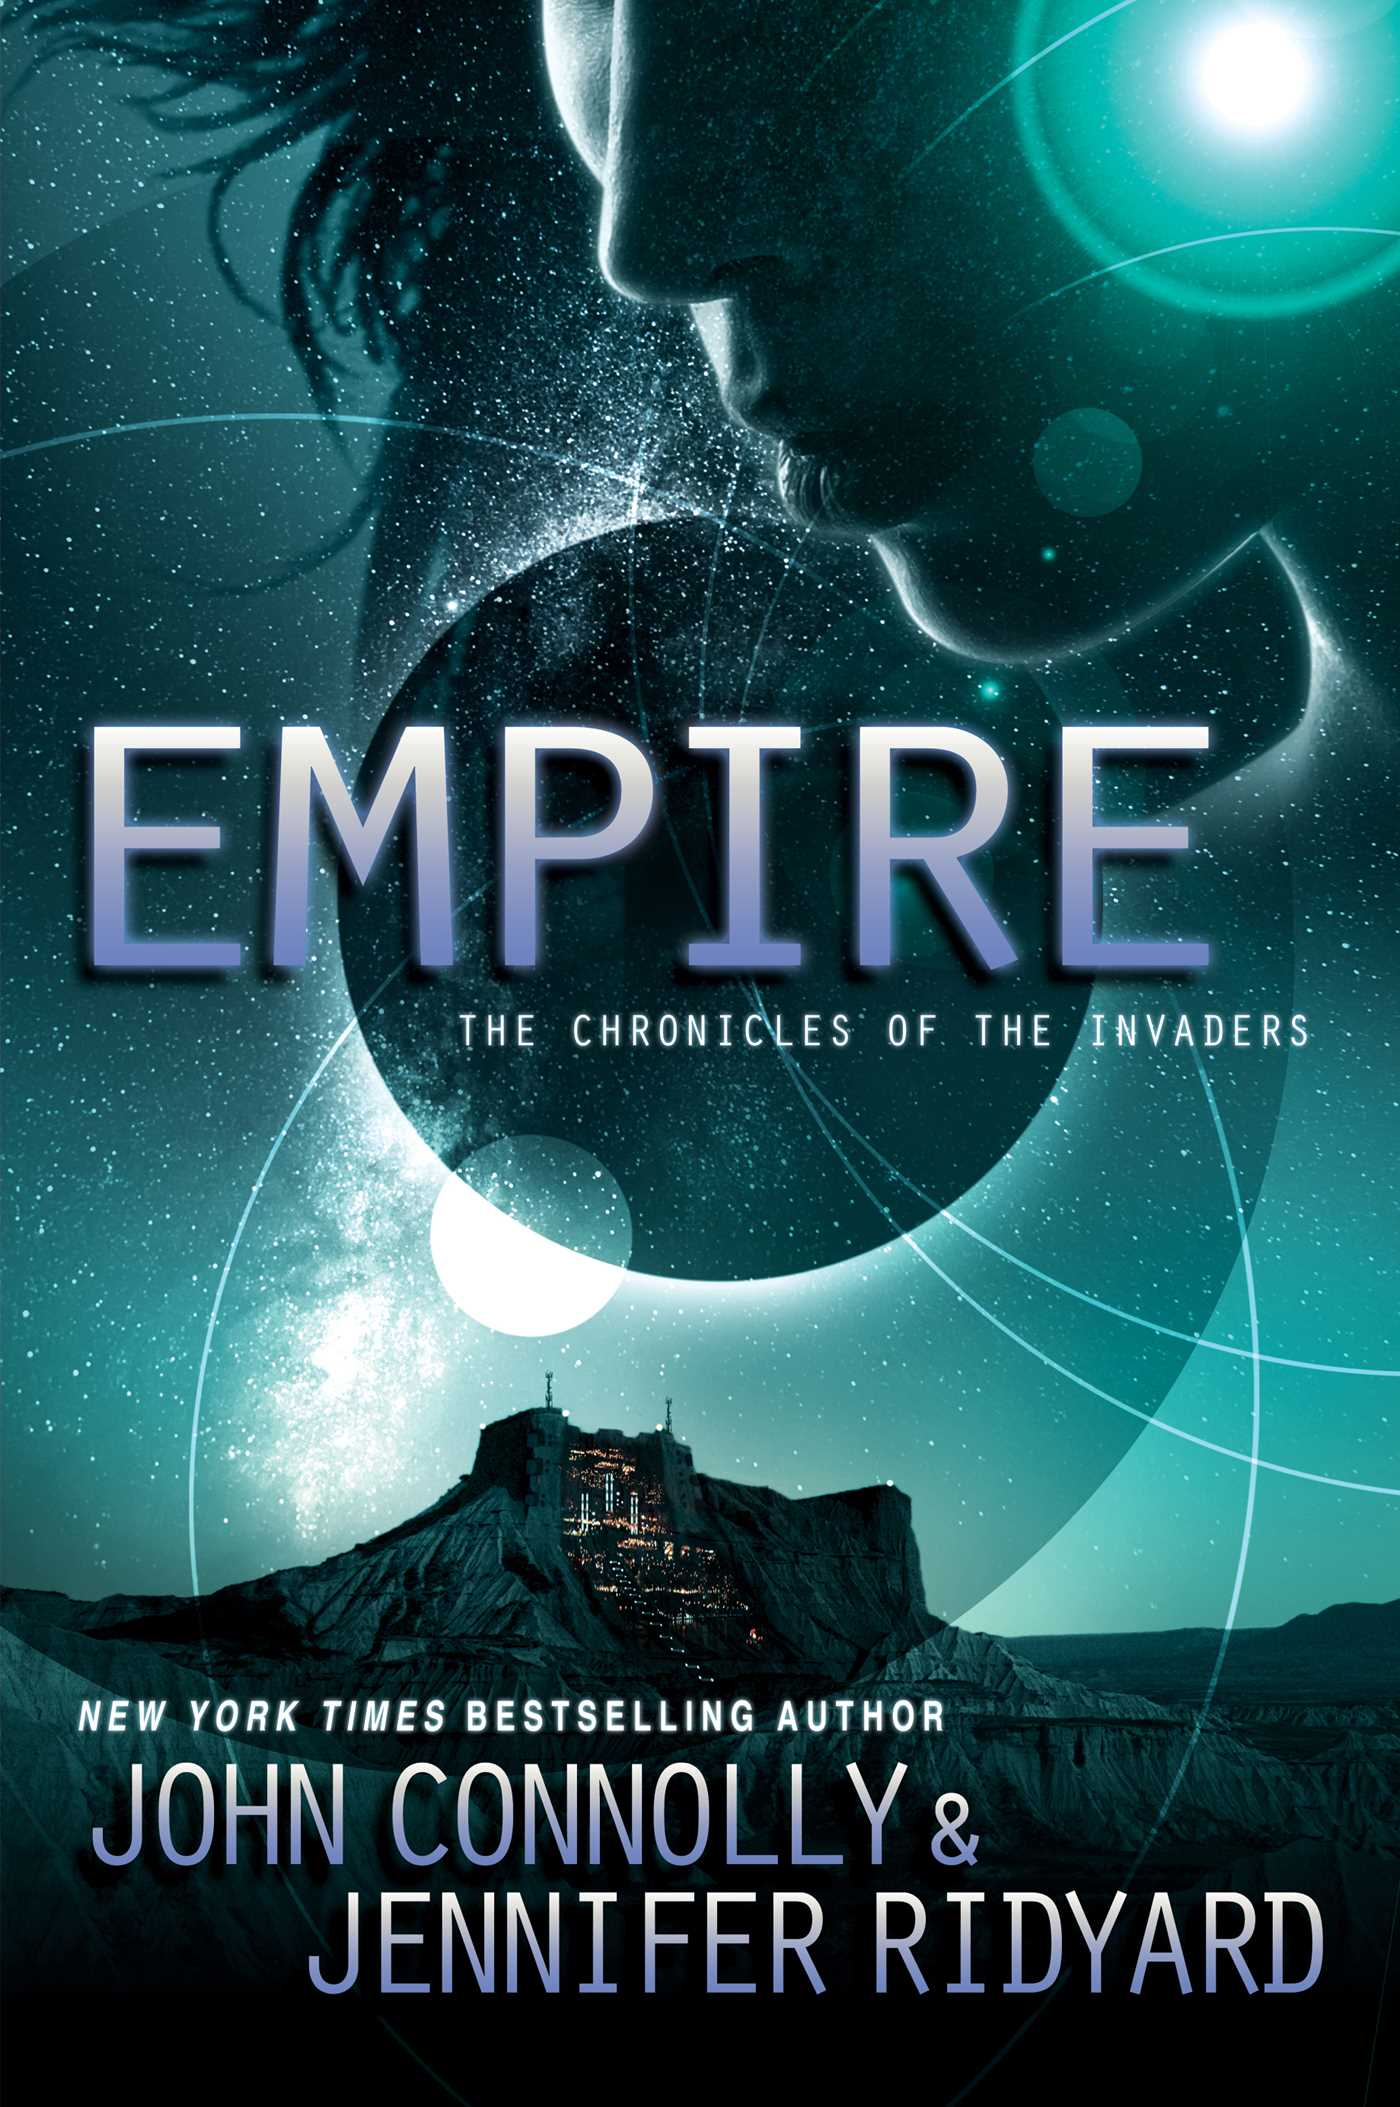 Empire-9781476757155_hr